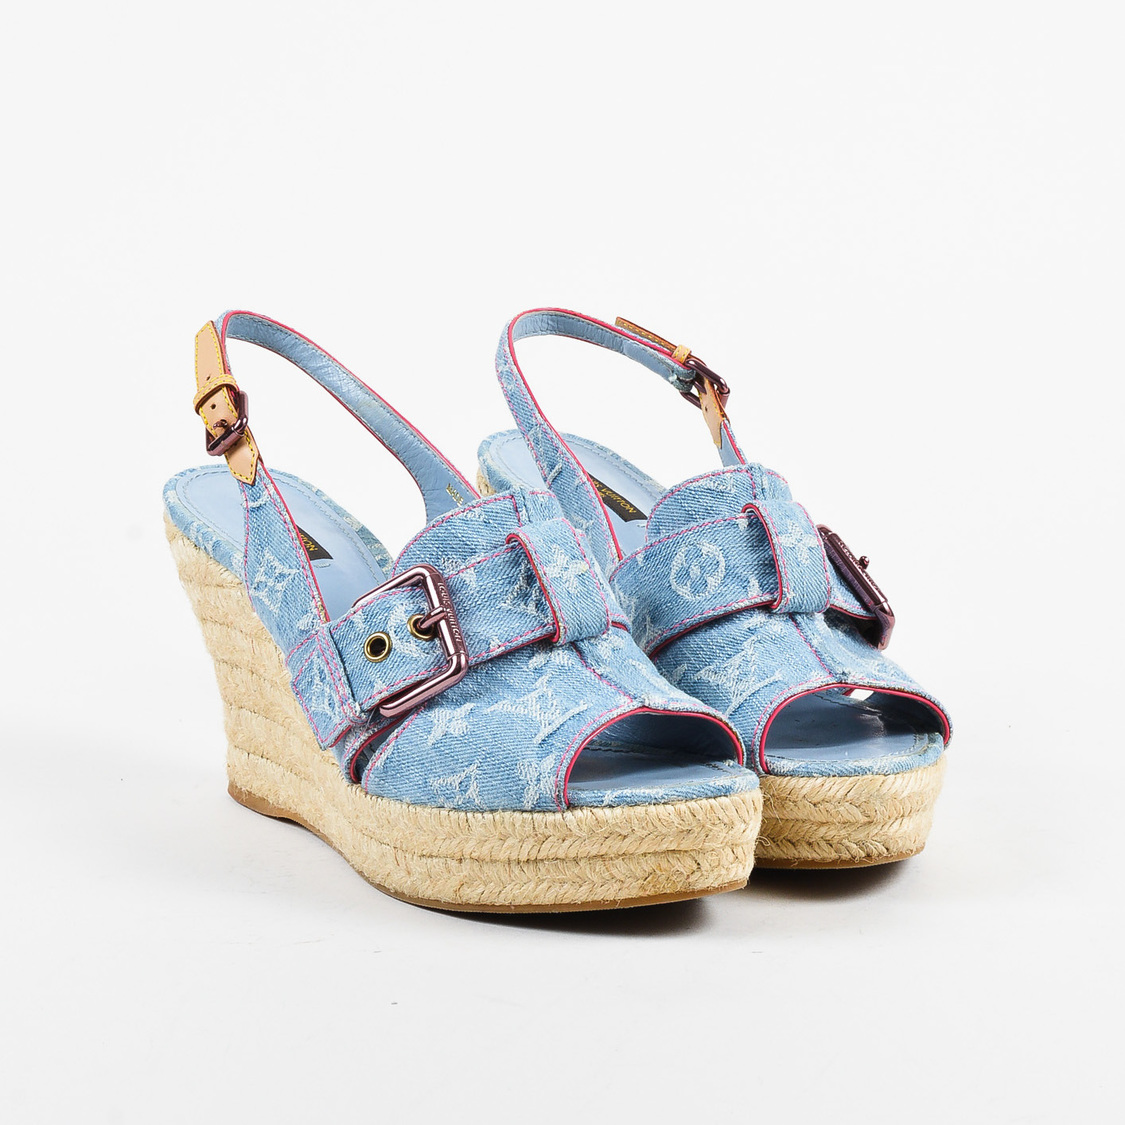 4de24b746cf4 Details about Louis Vuitton Blue Monogram Denim   Leather Slingback Wedge  Sandals SZ 41